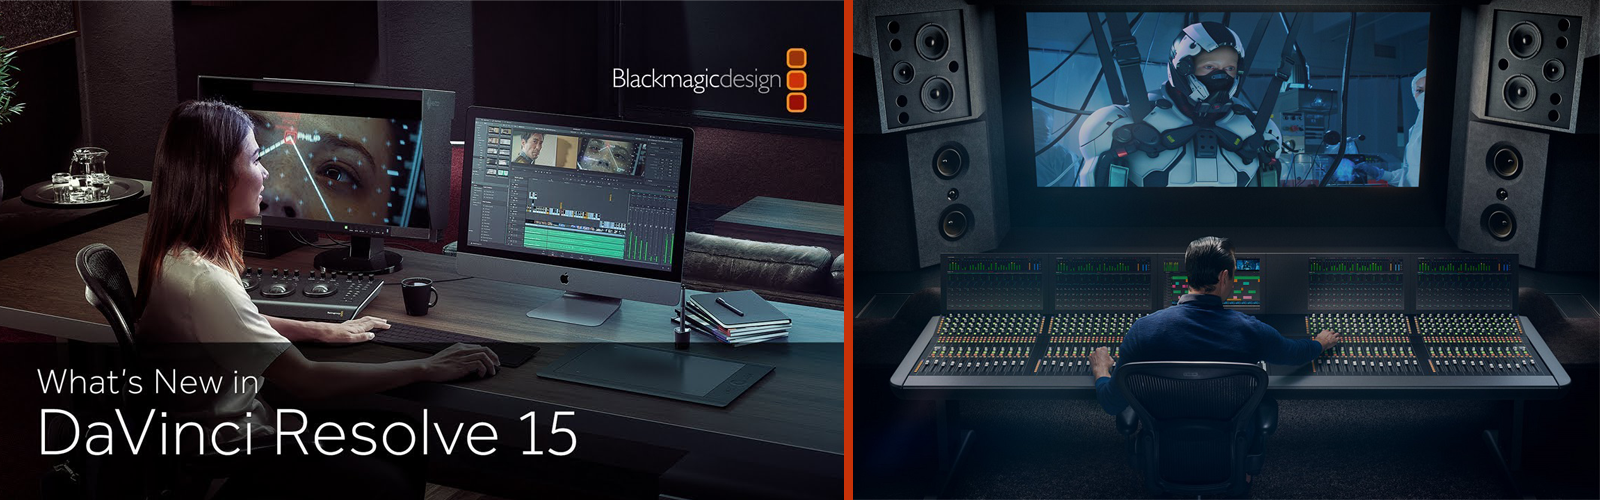 FREE DaVinci Resolve 15 Public Beta 6 Update Now Available